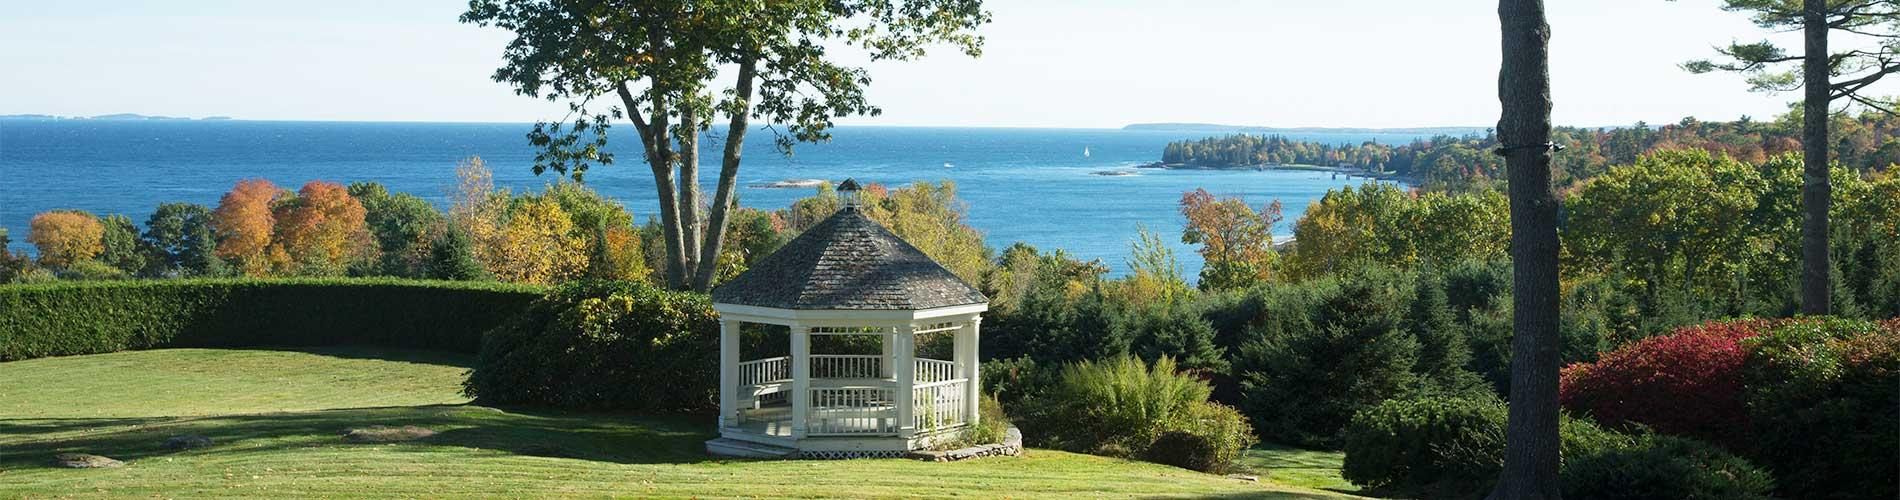 View of Penobscot Bay with gazebo in foreground